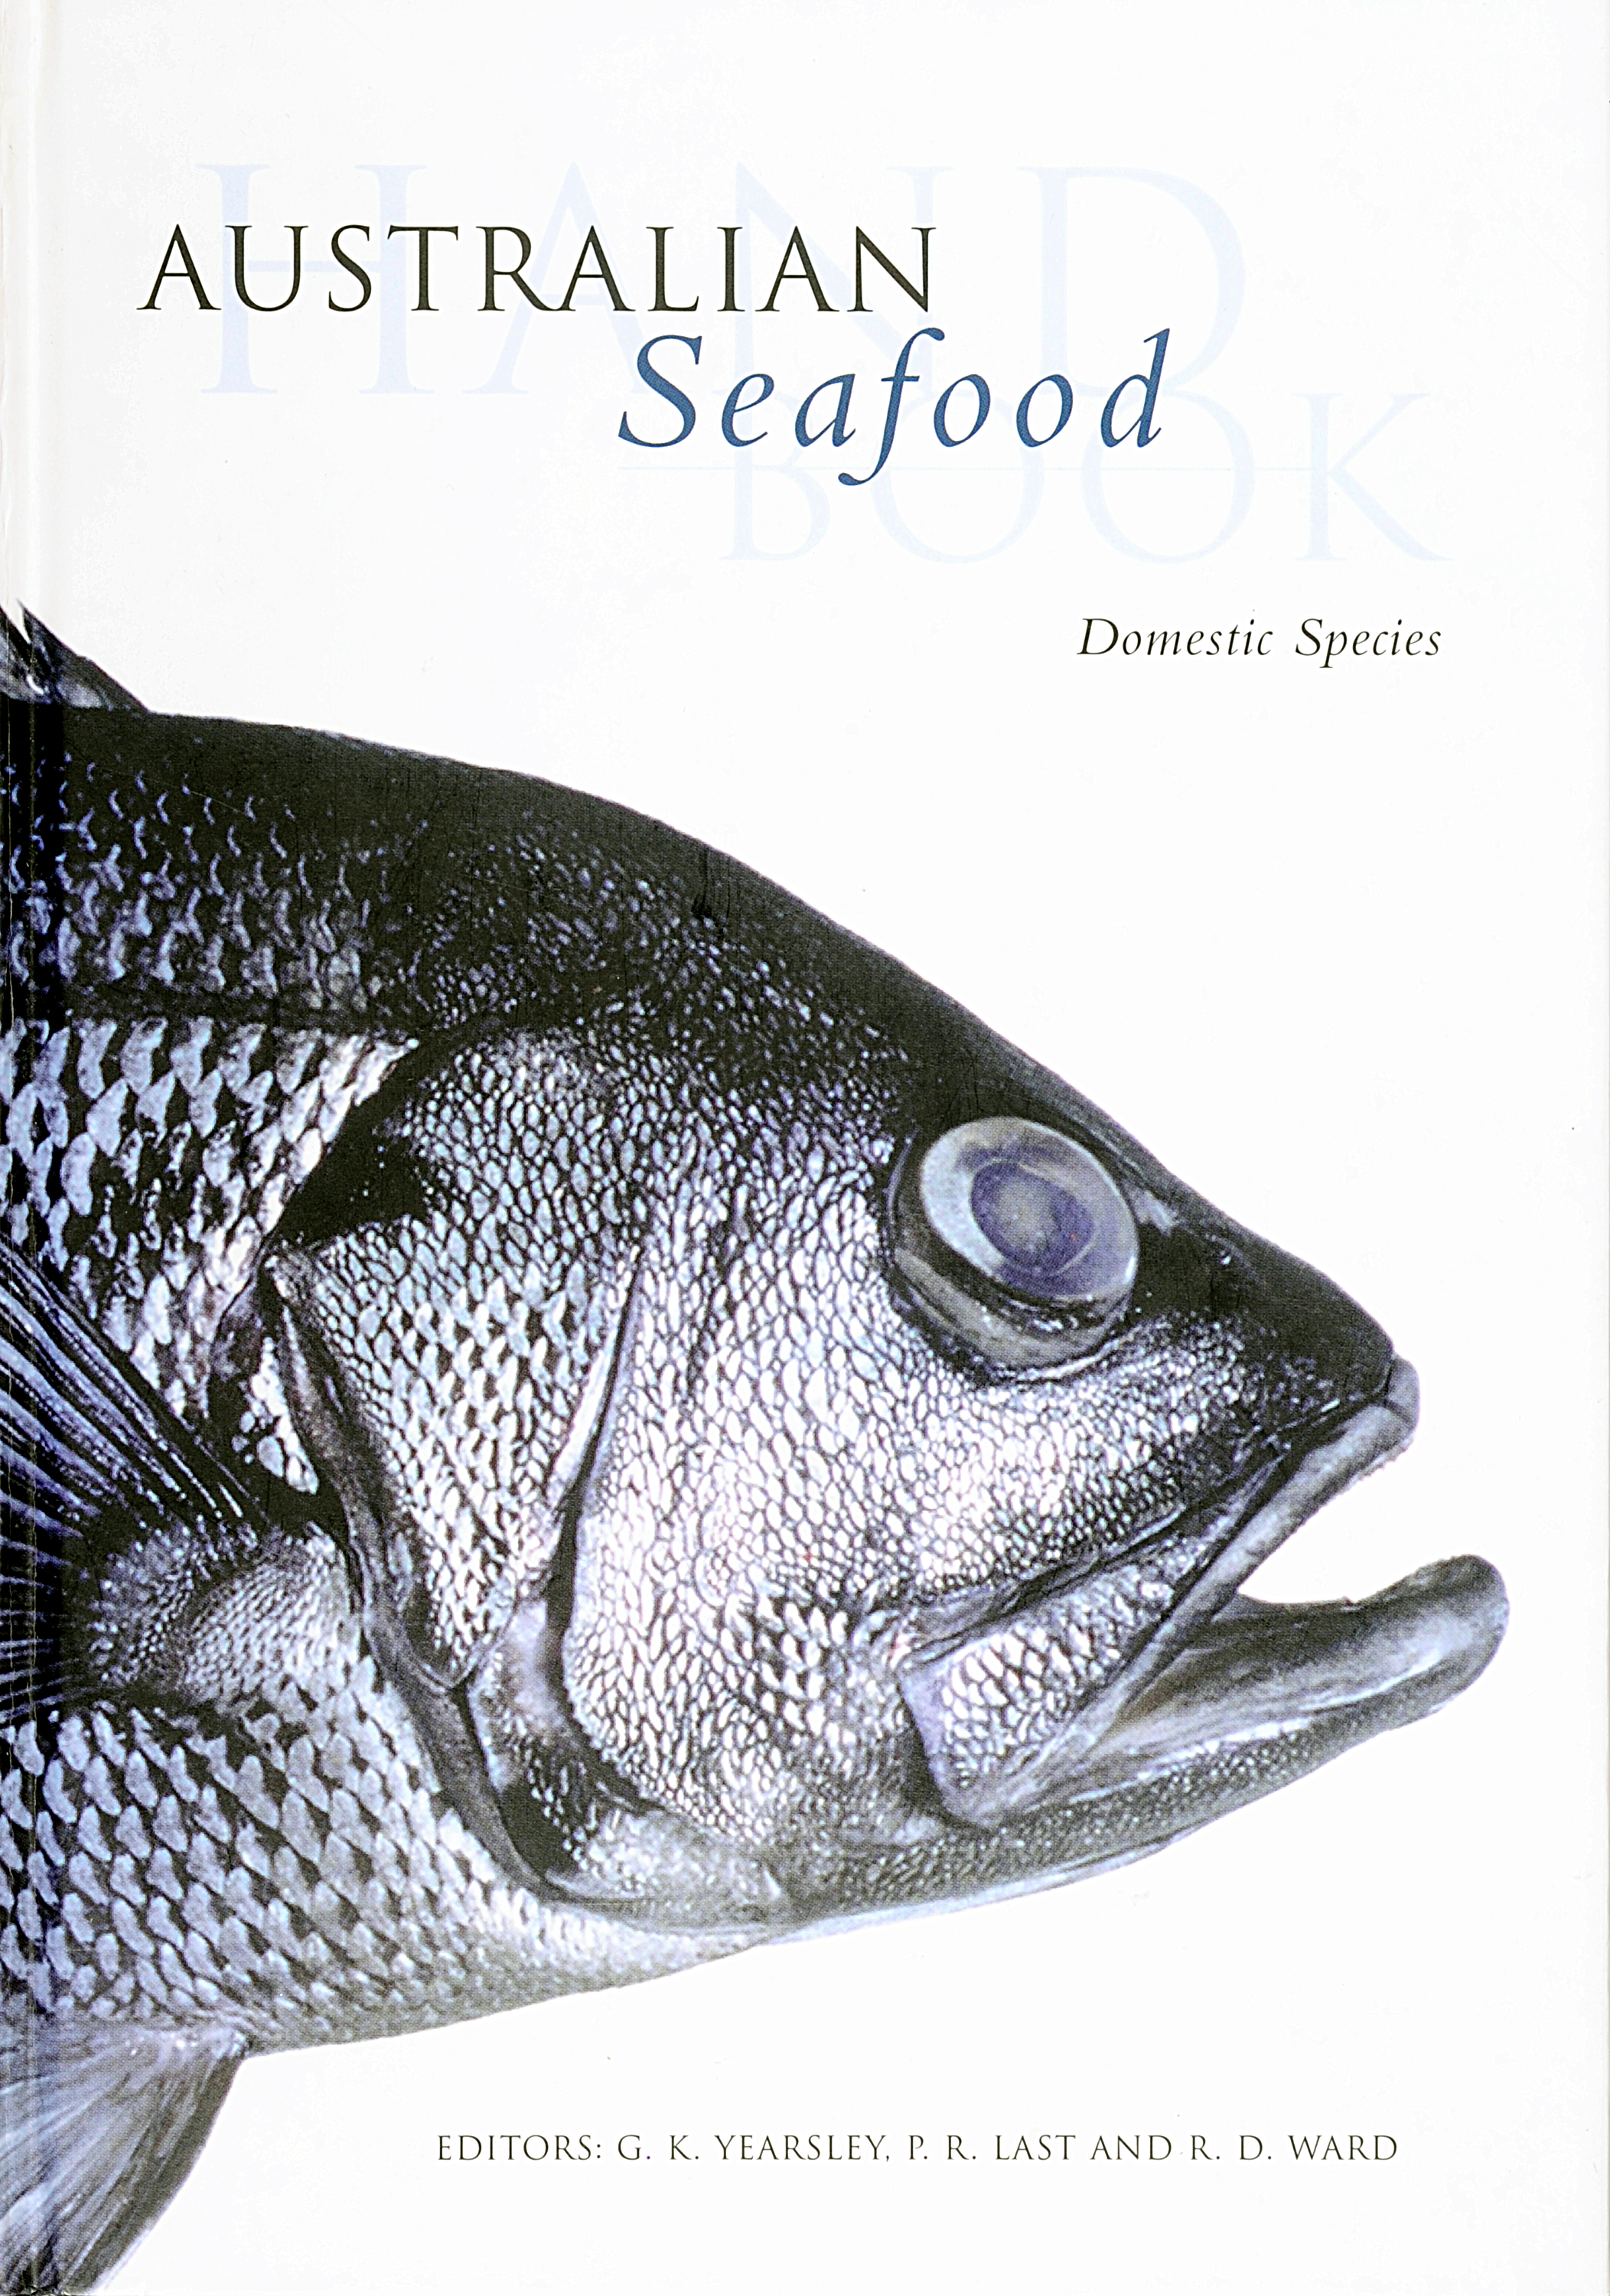 Australian Seafood handbook - Domestic species. Editors: G.K Yearsley. P.R. Last and R.D. Ward